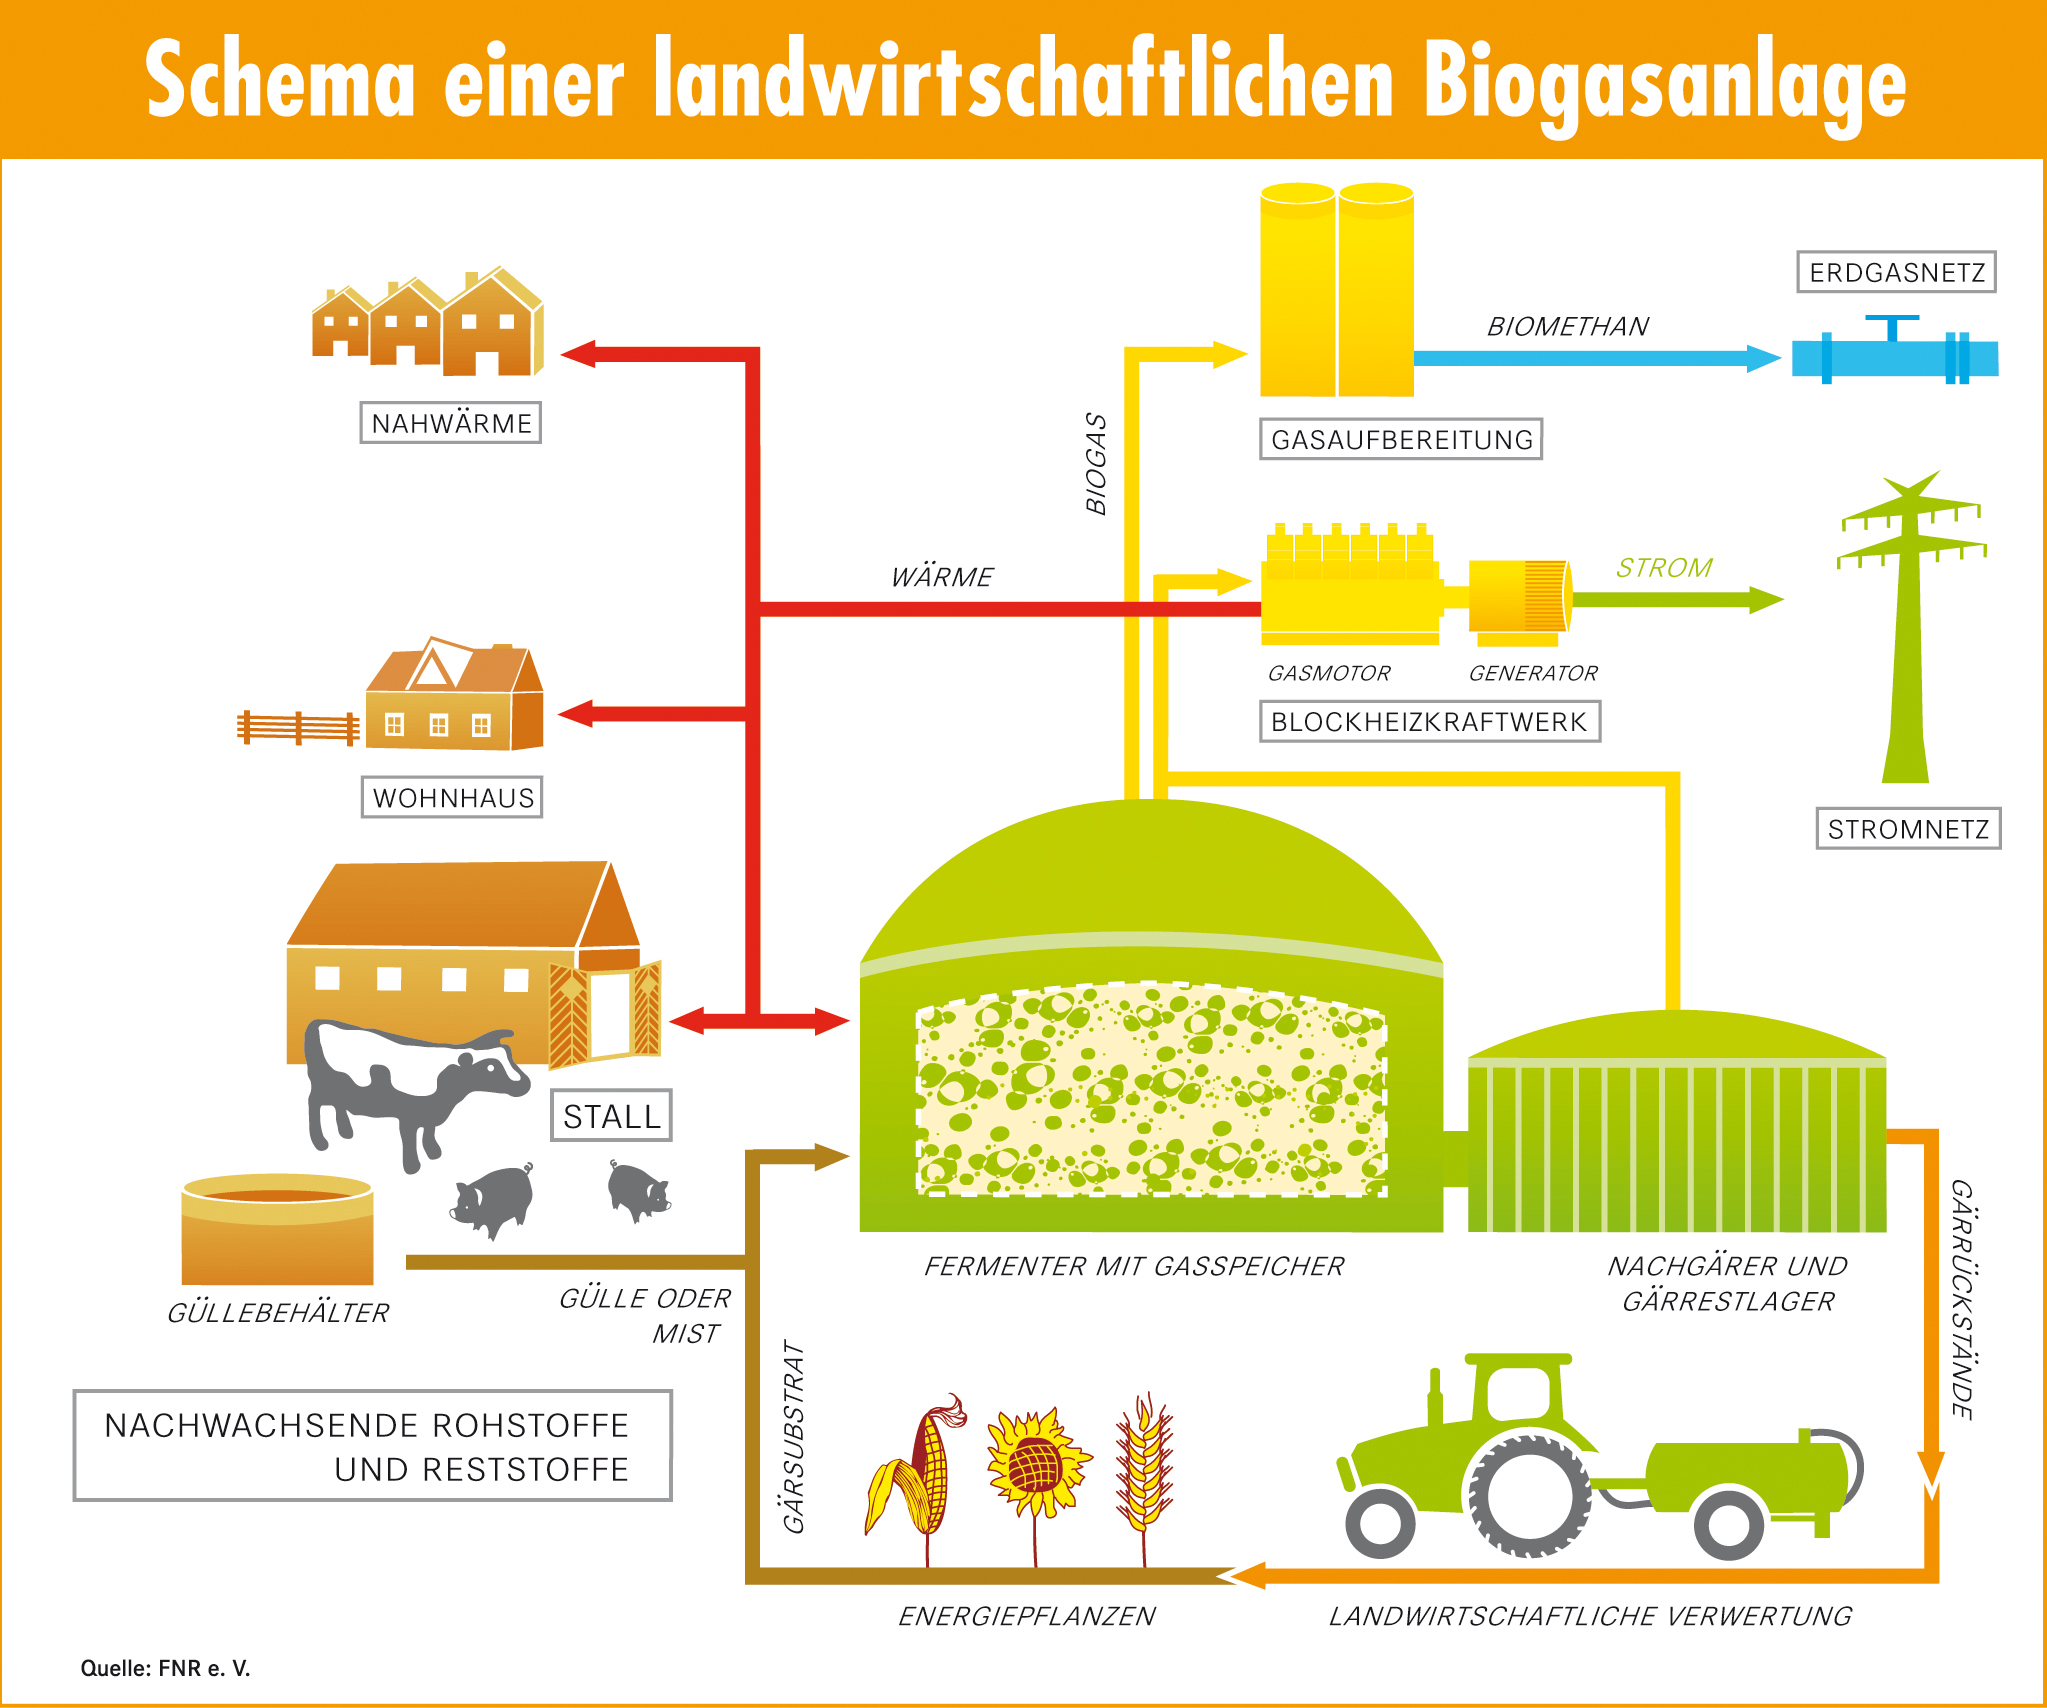 fnr biogas schema einer landwirtschaftlichen biogasanlage. Black Bedroom Furniture Sets. Home Design Ideas